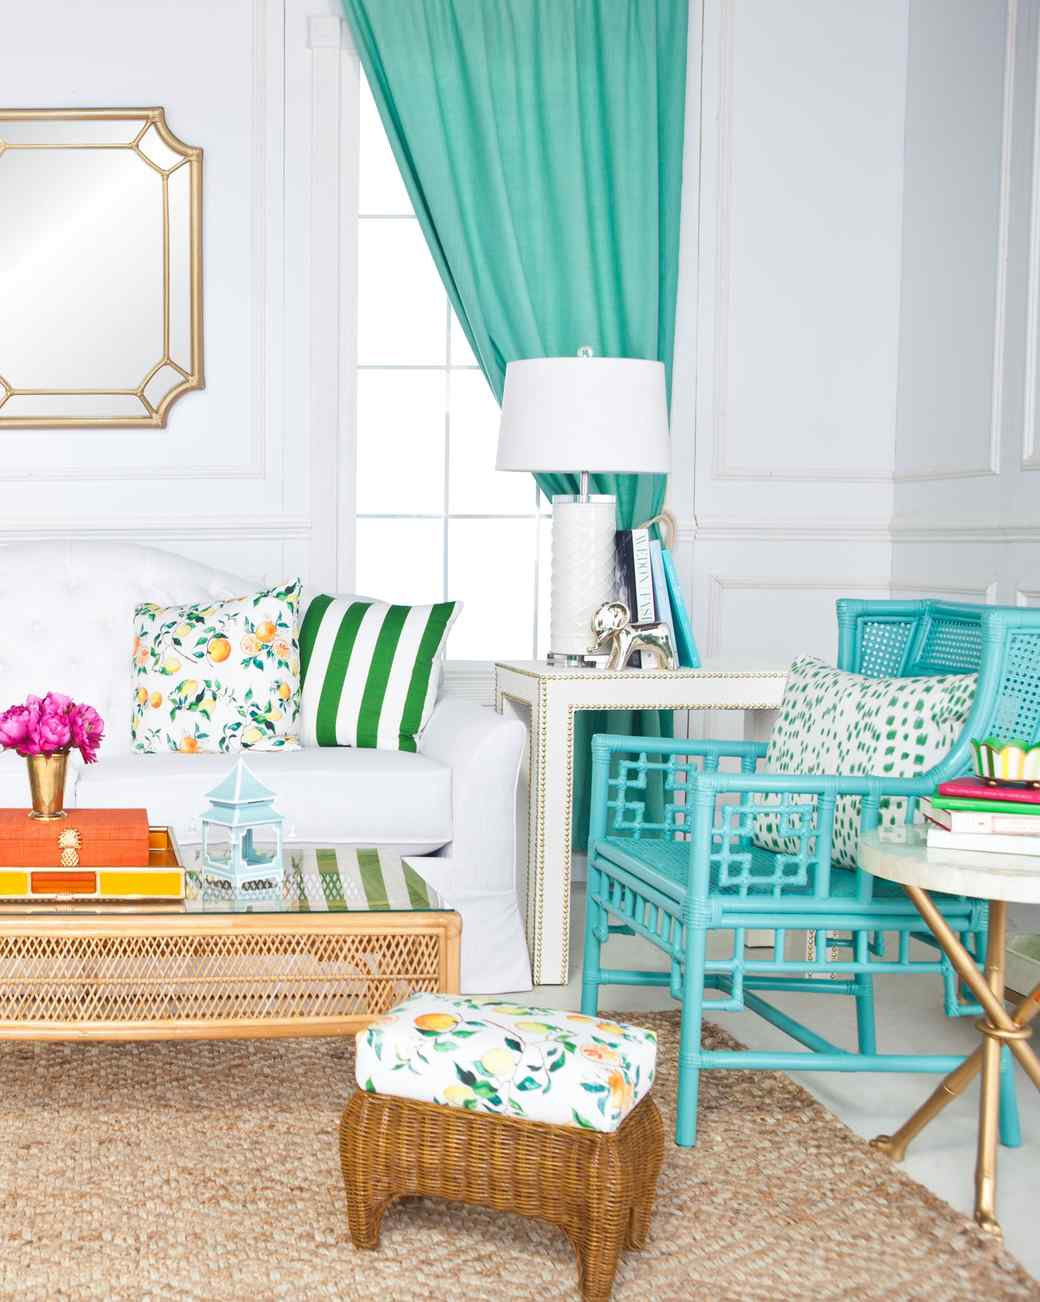 11 Living Room Decorating Ideas Every Homeowner Should Know